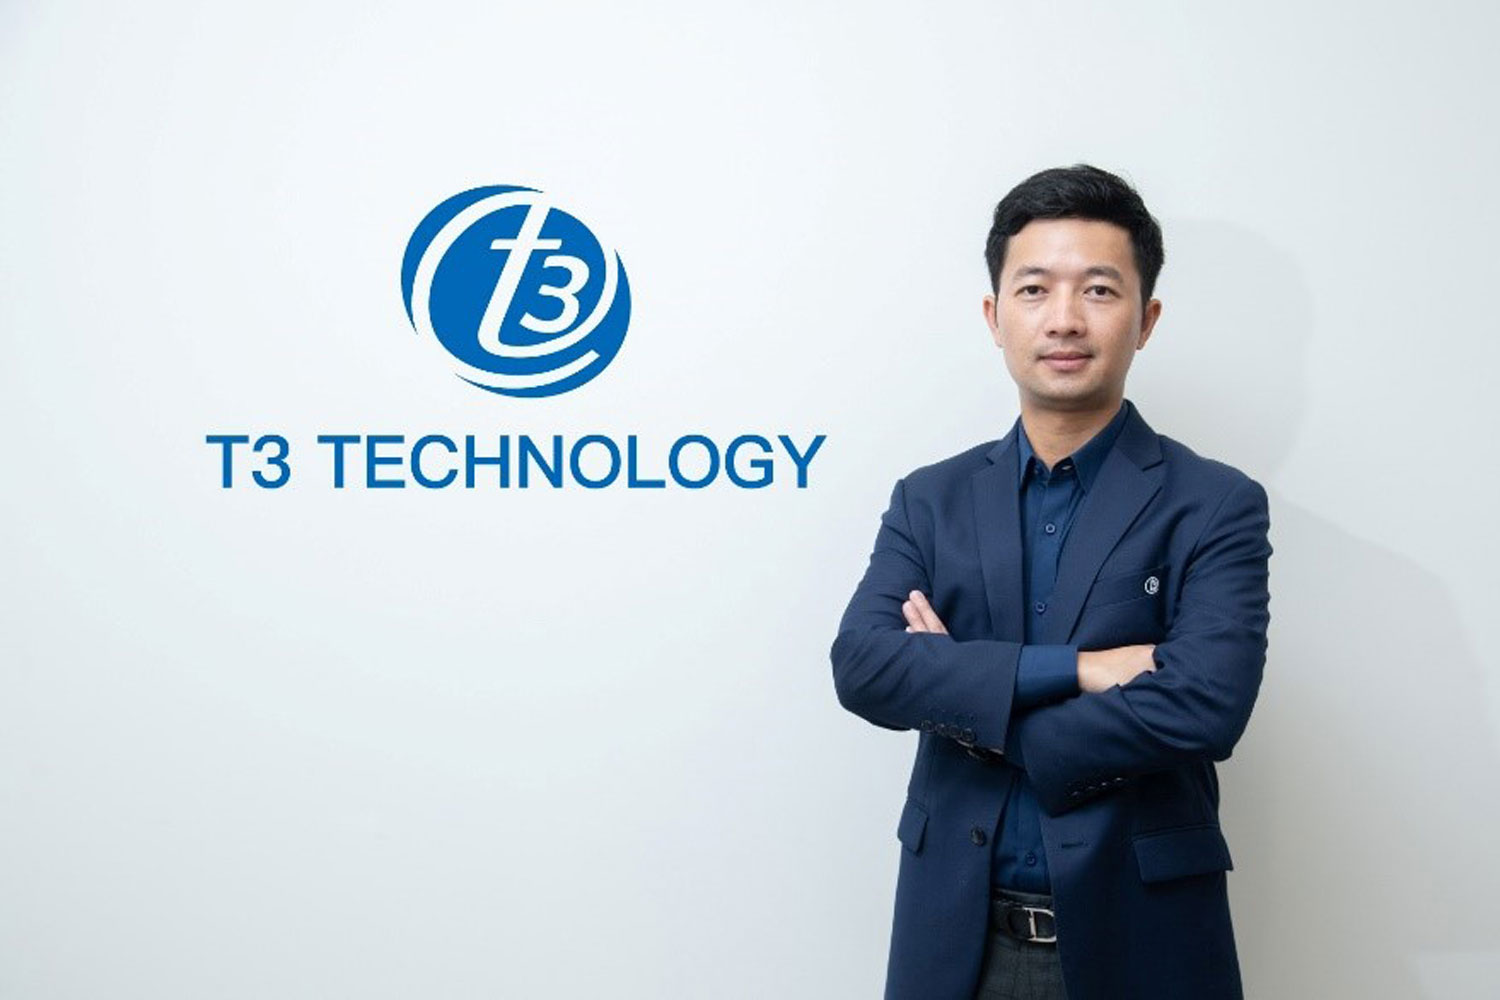 T3 Technology: Thailand Smart IoT Dark Horse aiming to be the leader in SEA